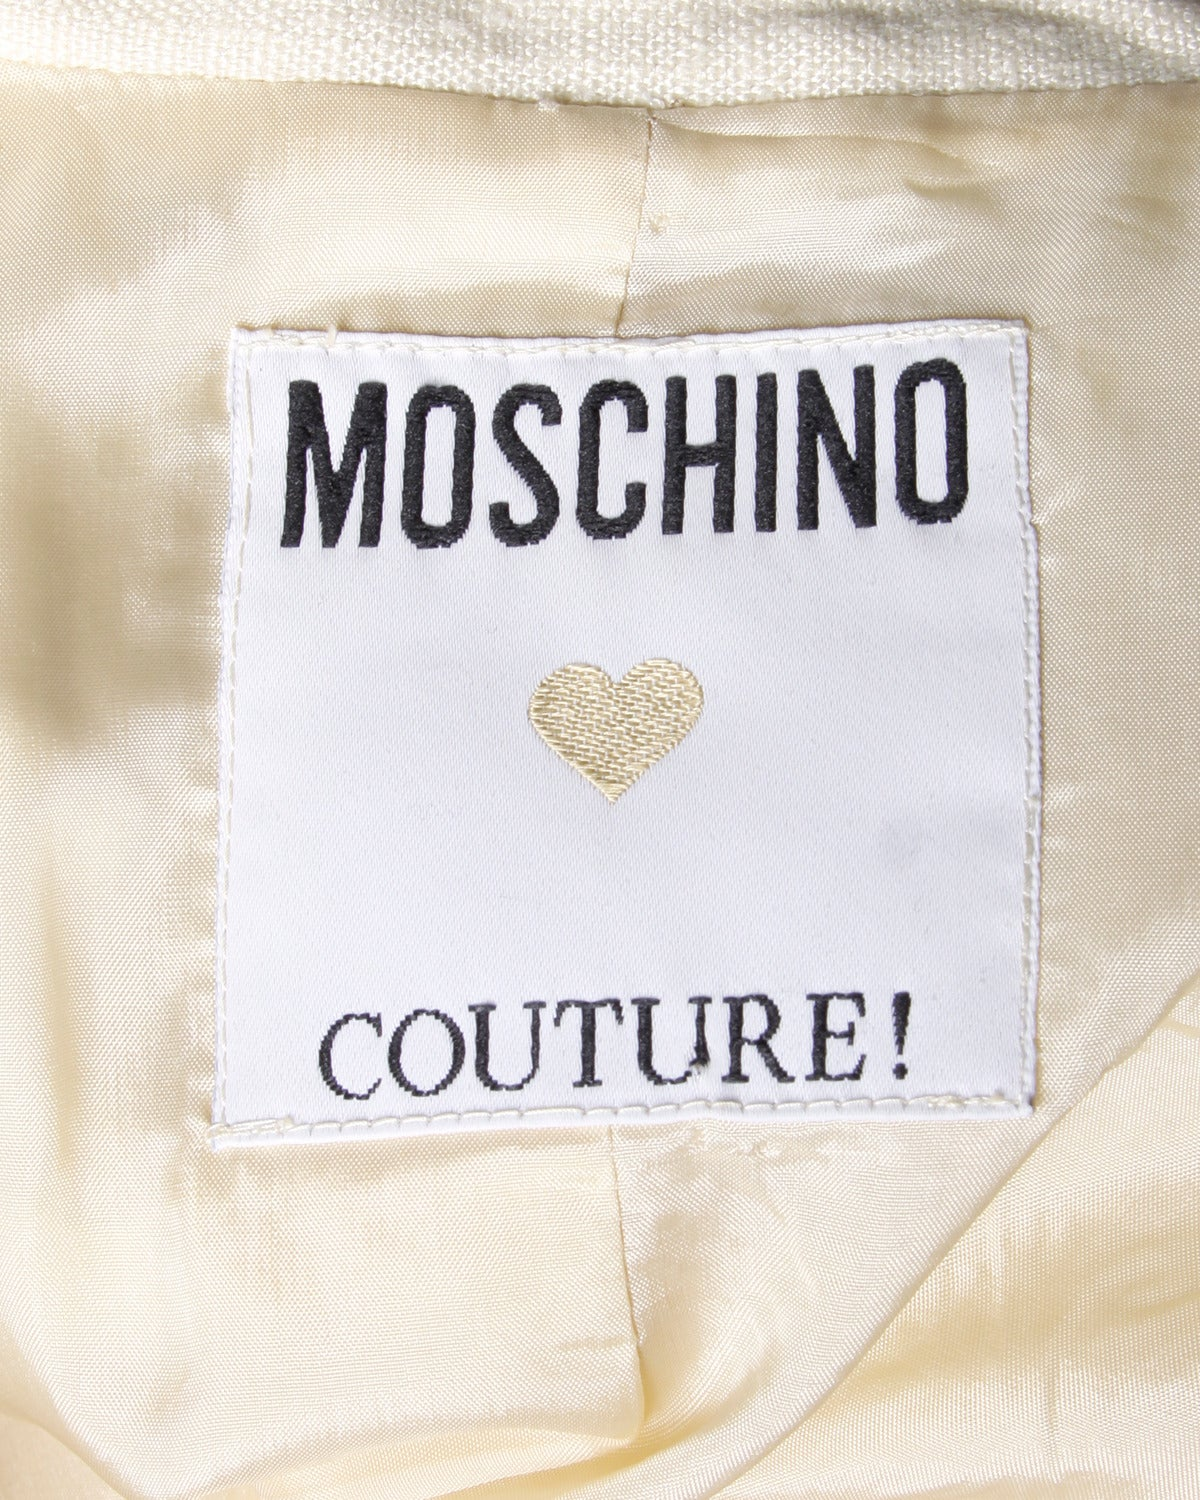 Moschino Couture! Vintage 1990s 90s Cream Blazer or Suit Jacket For Sale 1